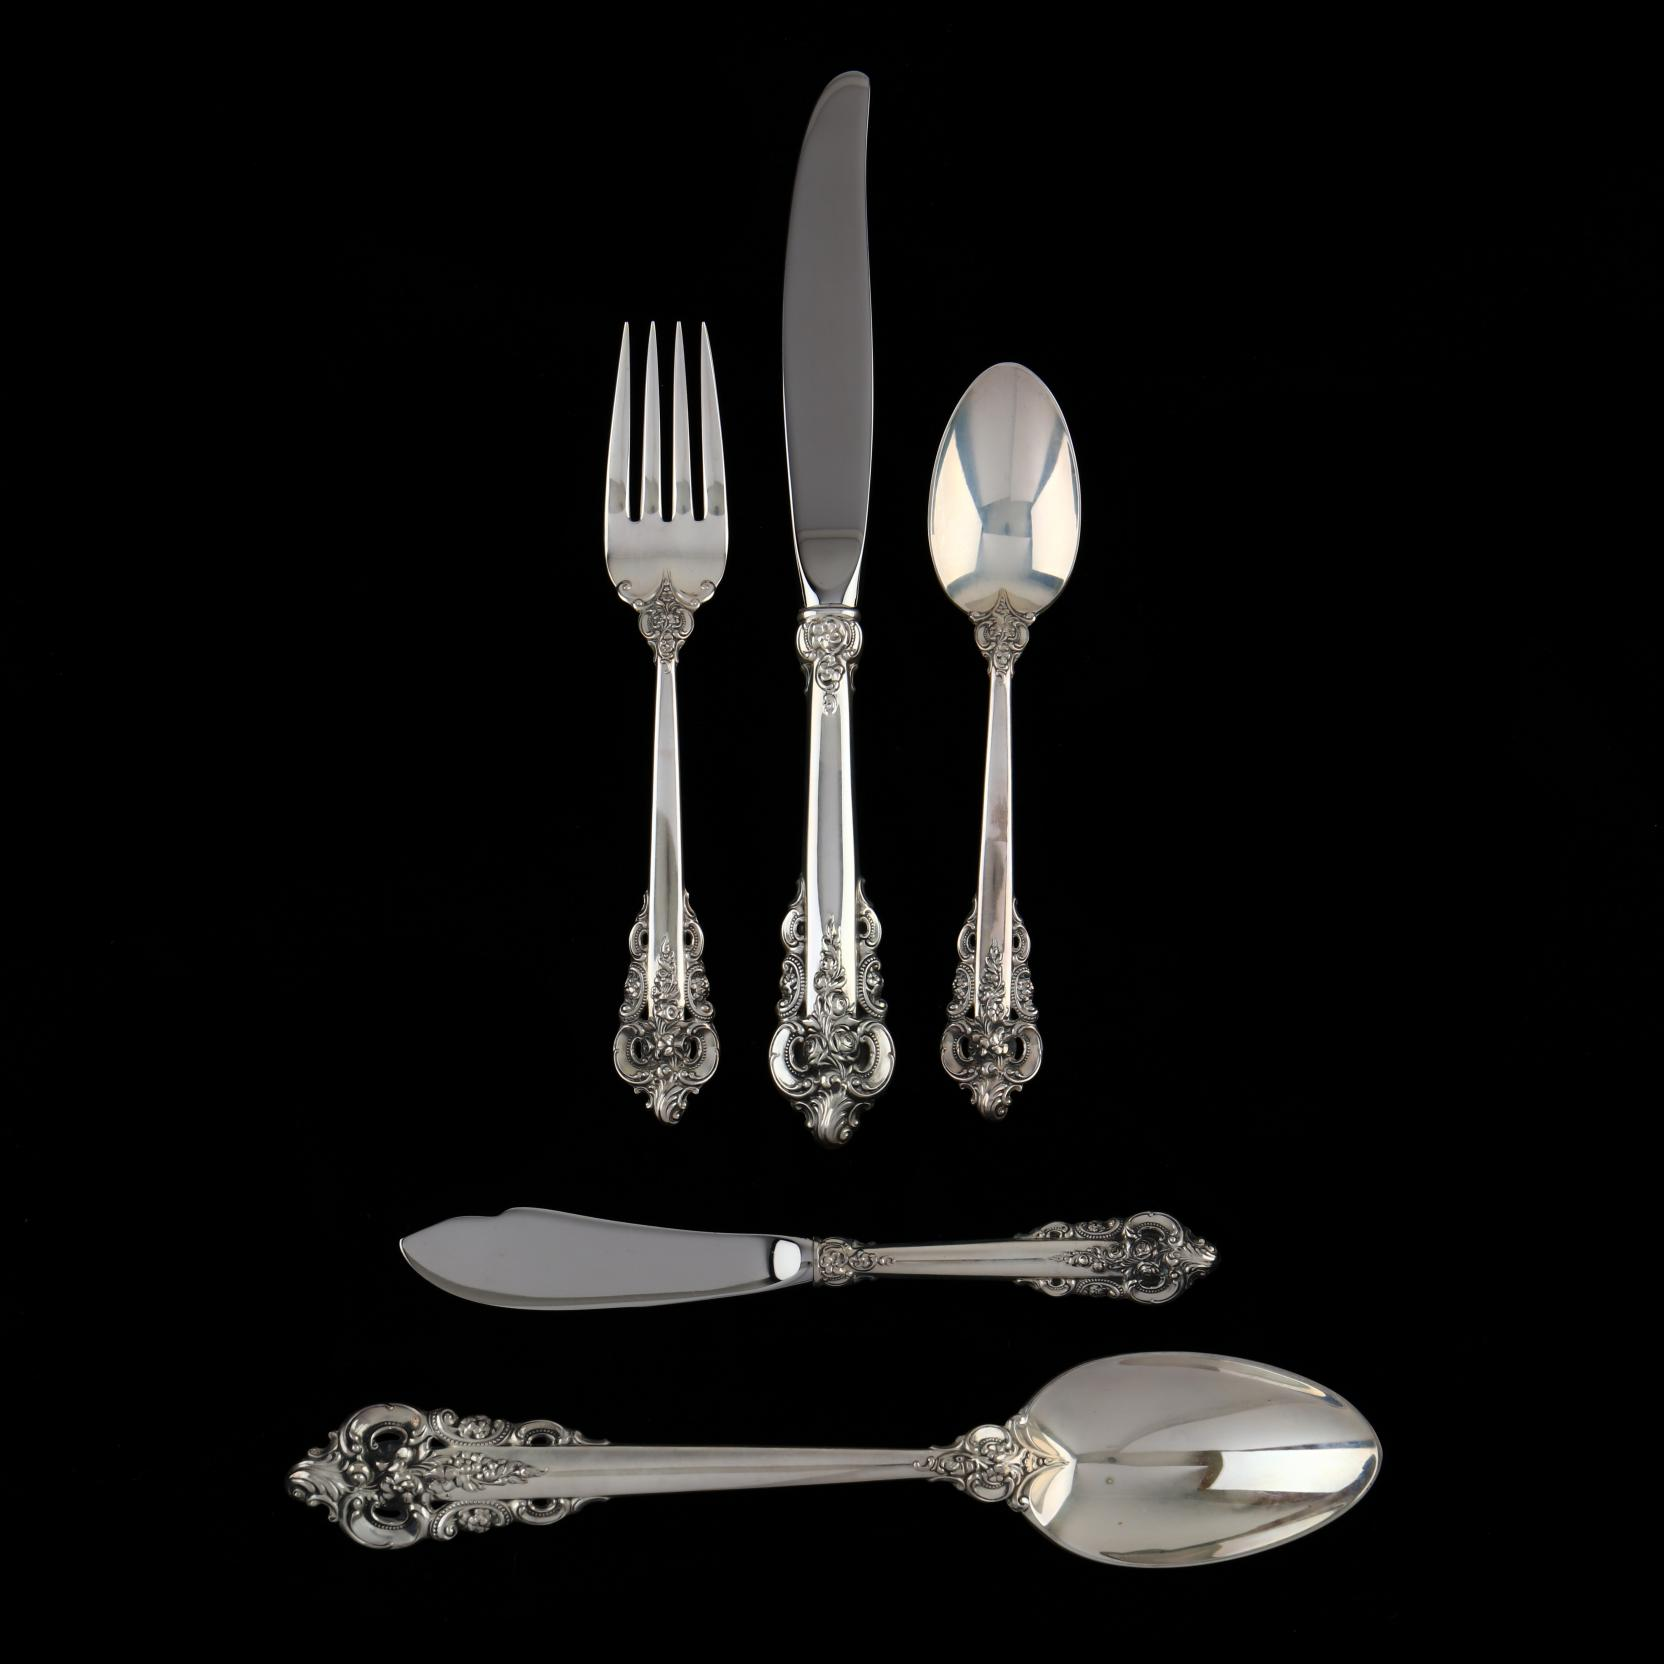 wallace-grand-baroque-sterling-silver-flatware